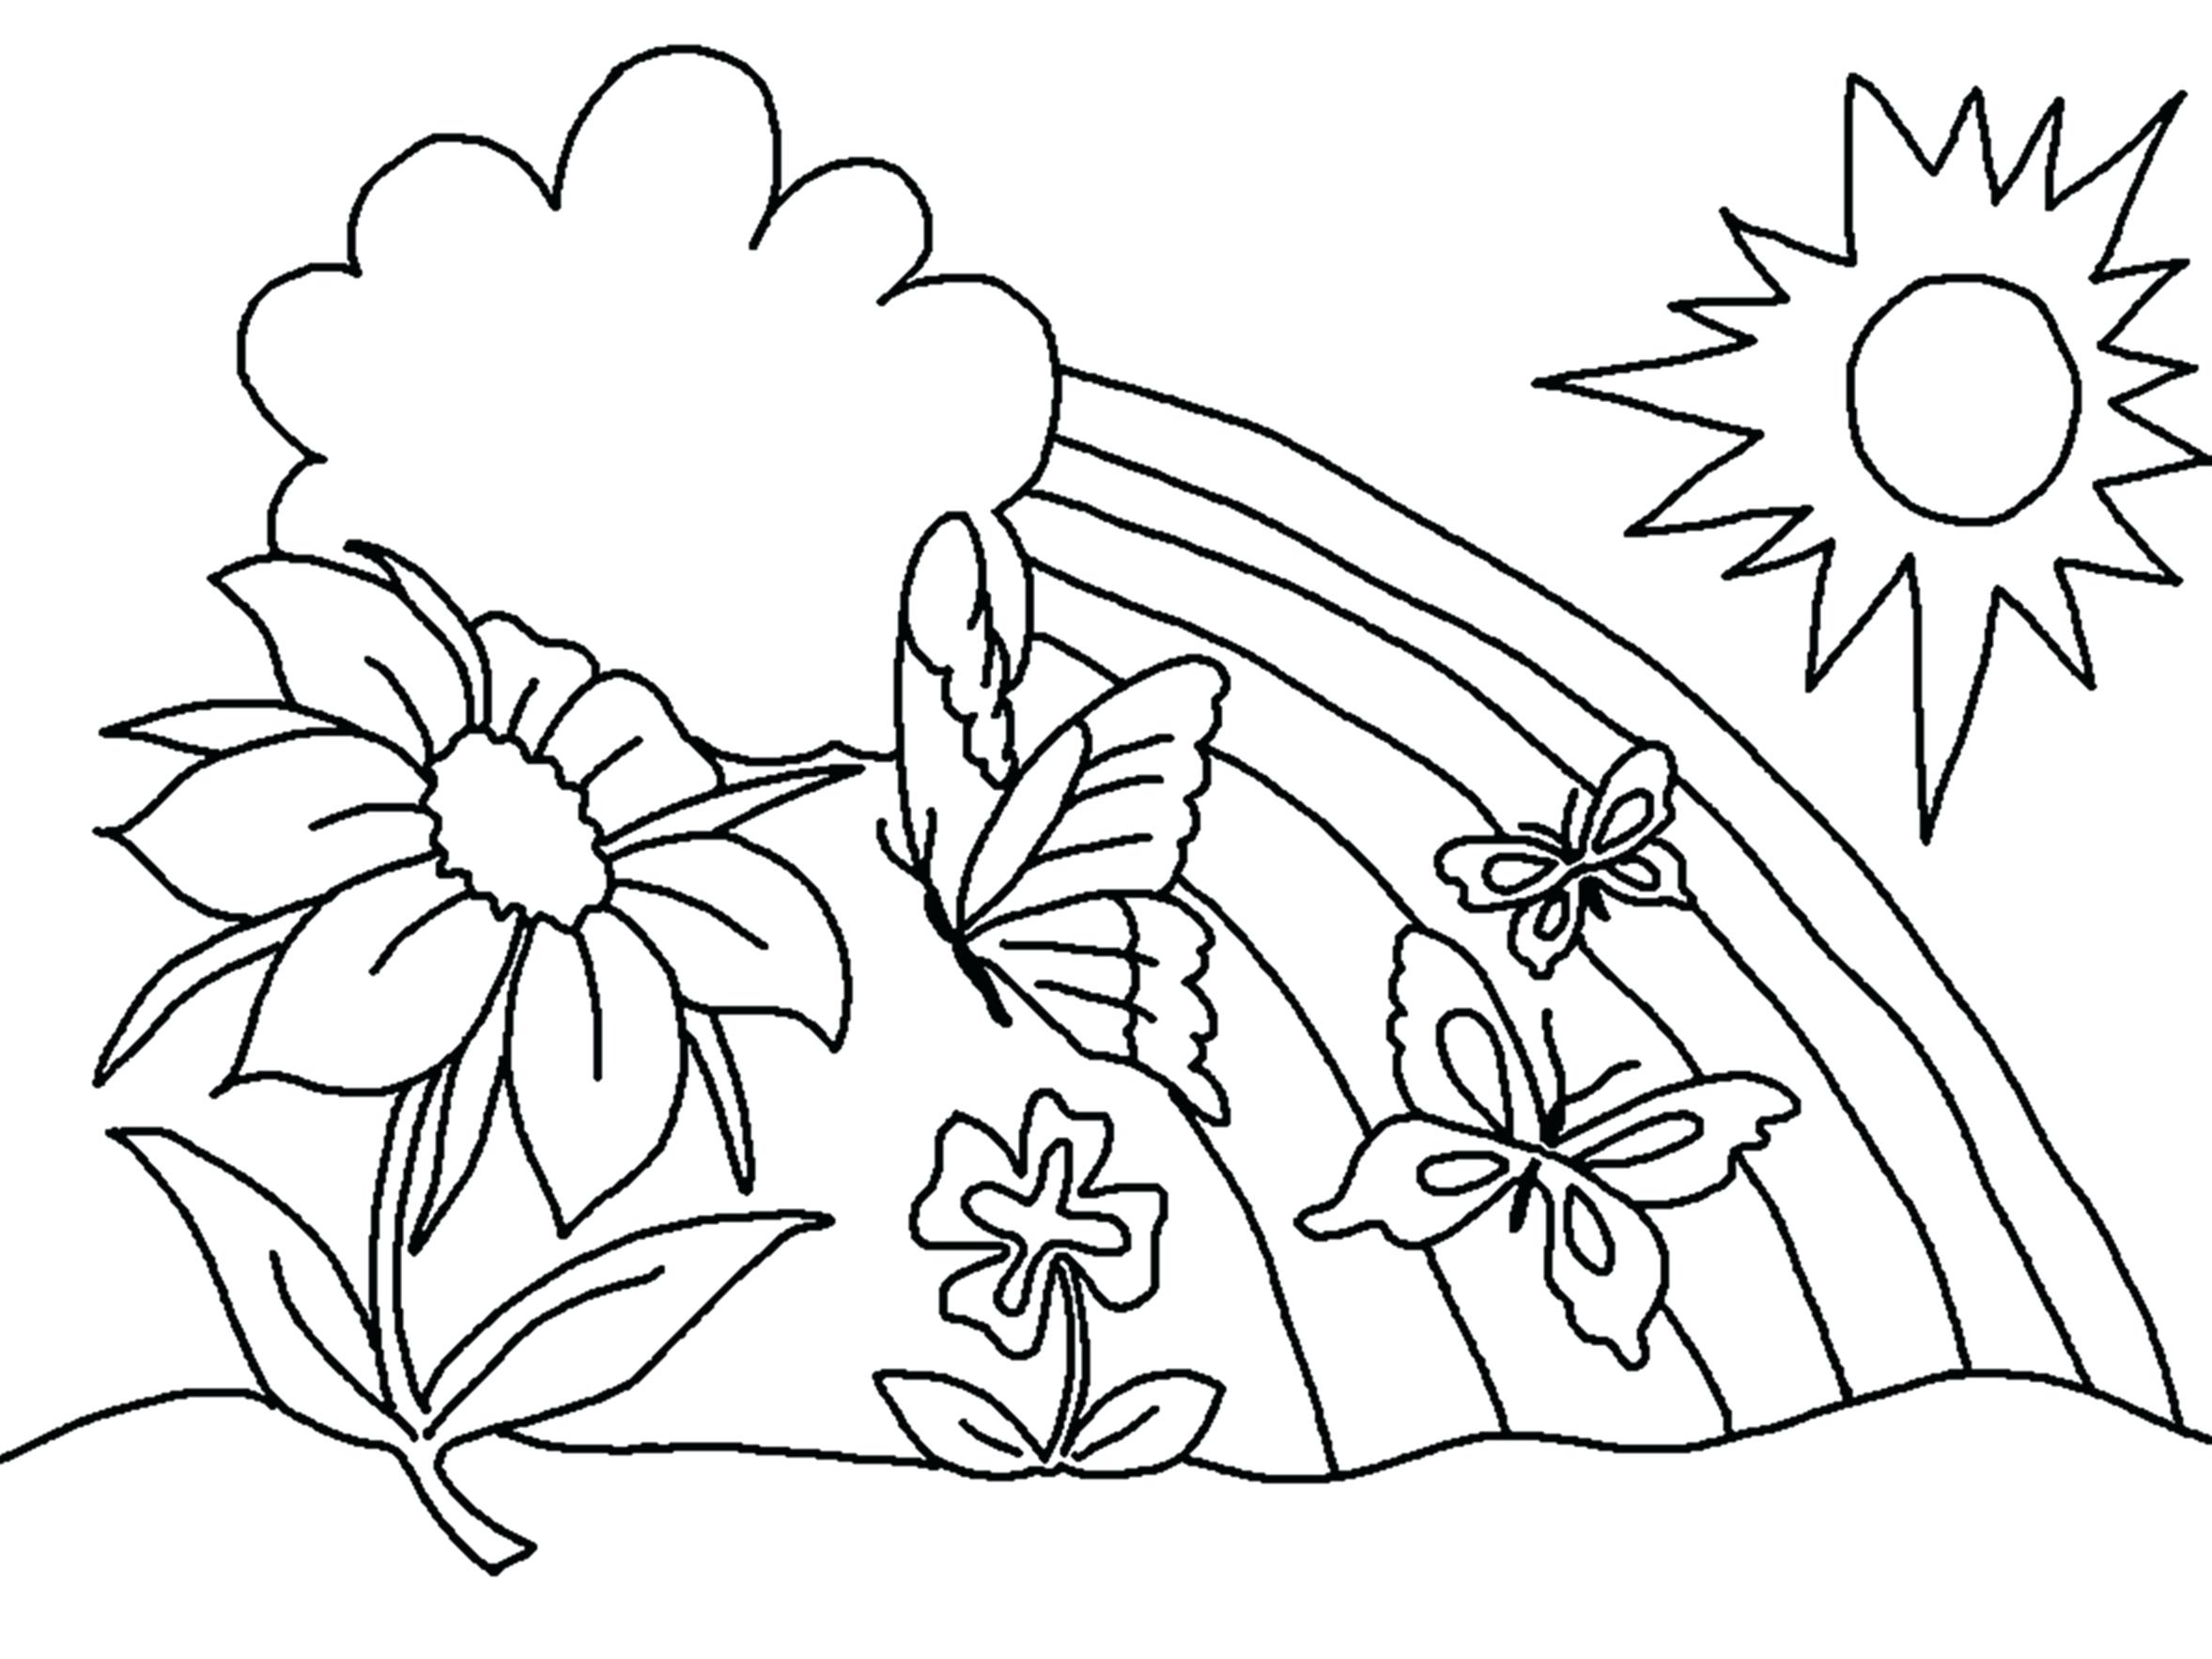 Coloring Pages : Coloring Pages Toddlers Printablesree - Free Printable Coloring Pages For Toddlers